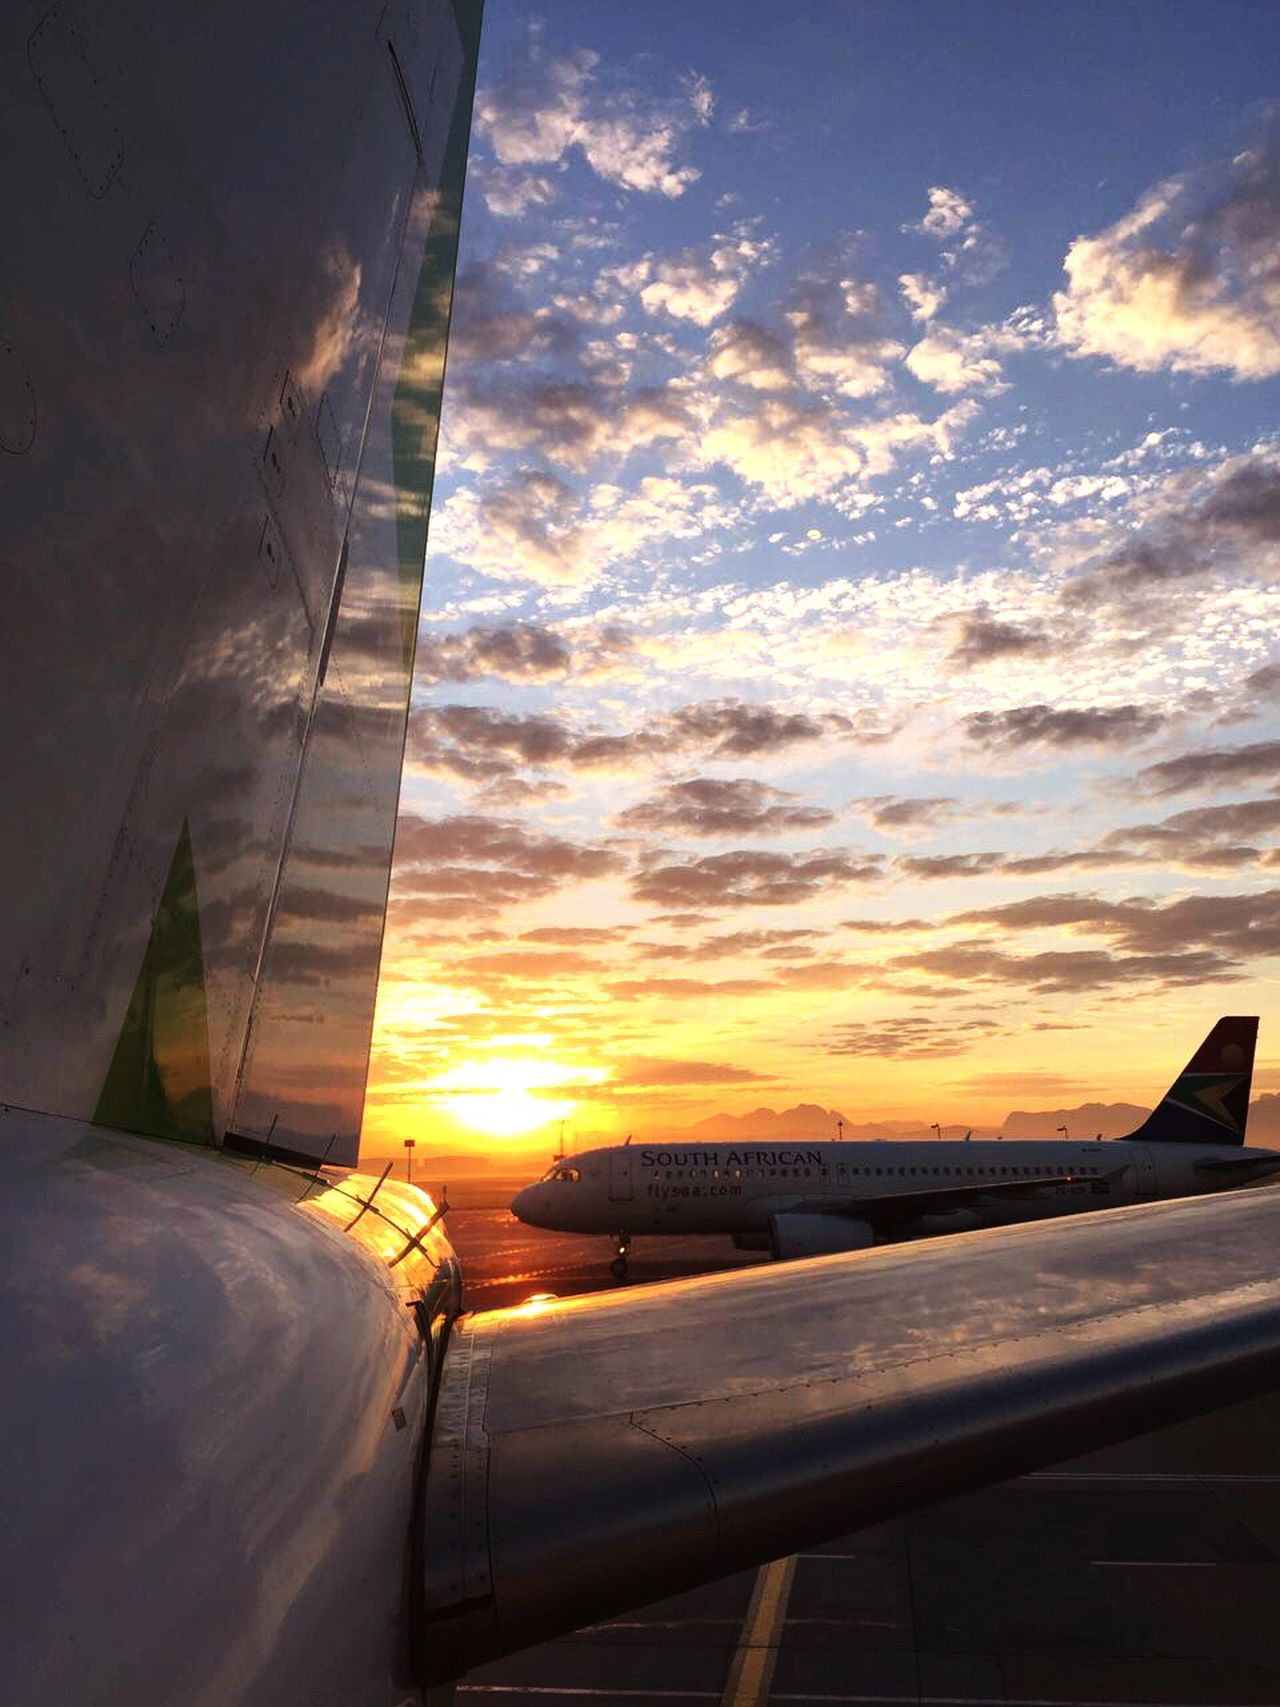 Airline Aircraft Sunrise Aircraft Sunrise